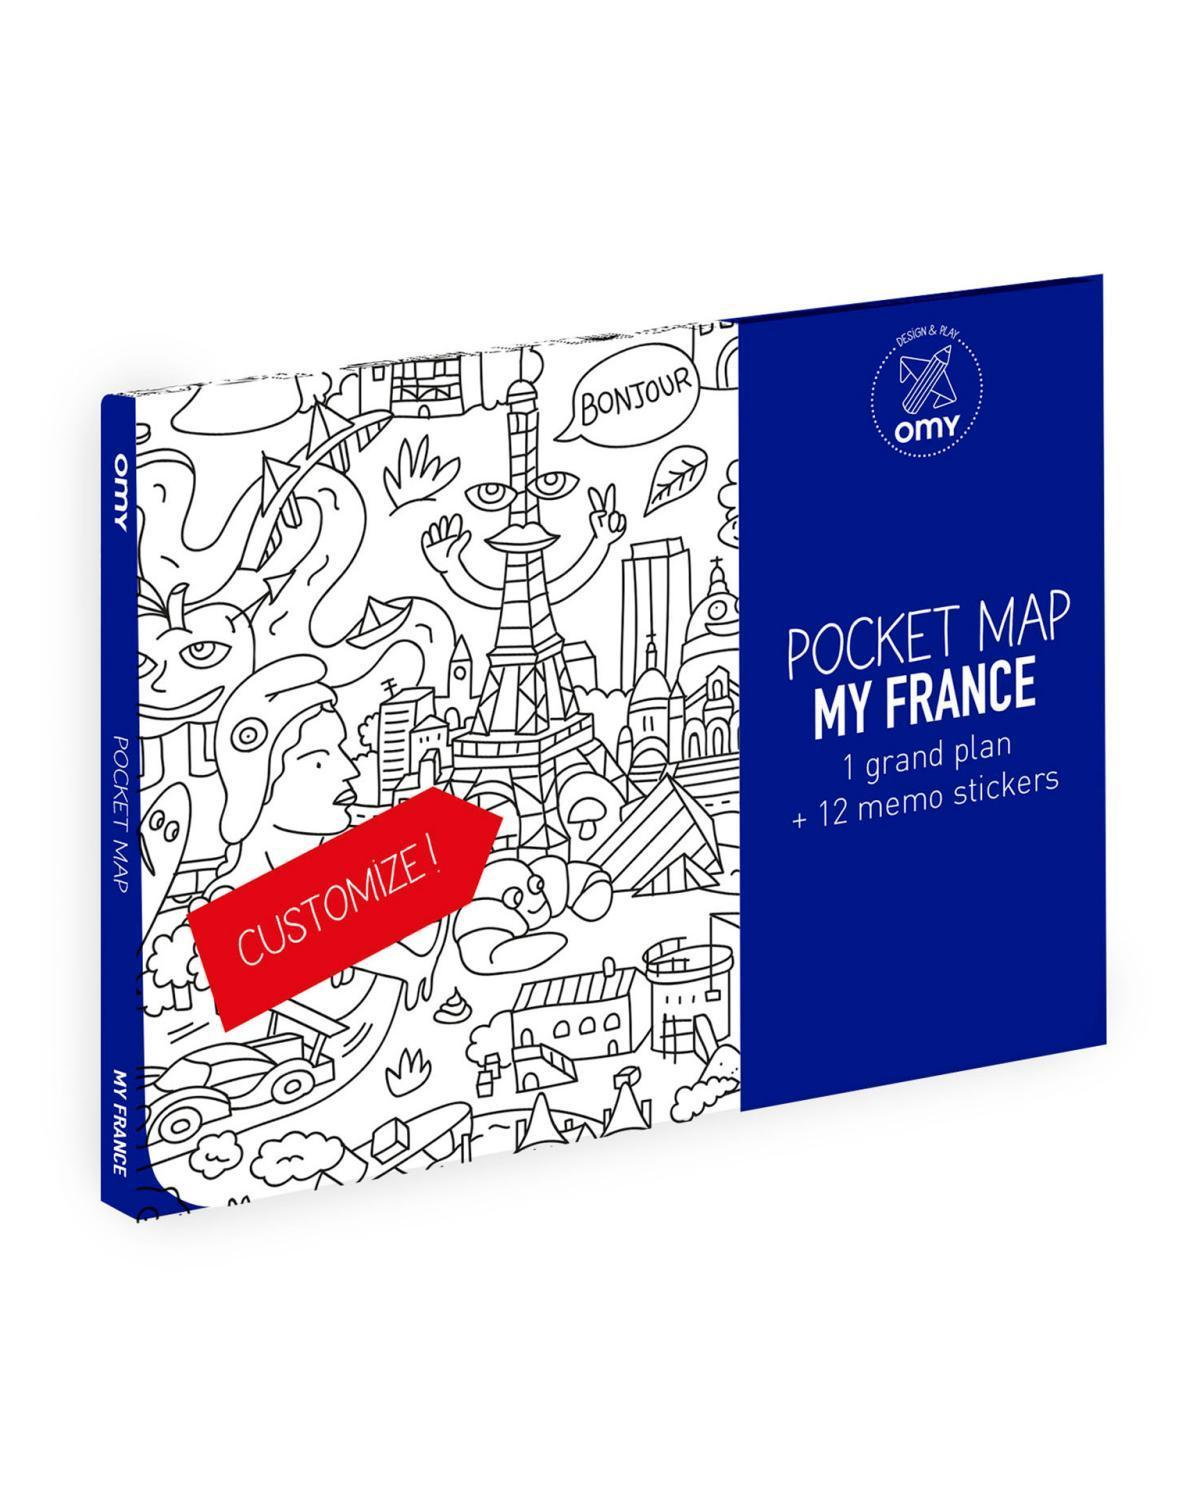 Little omy play France Pocket Map